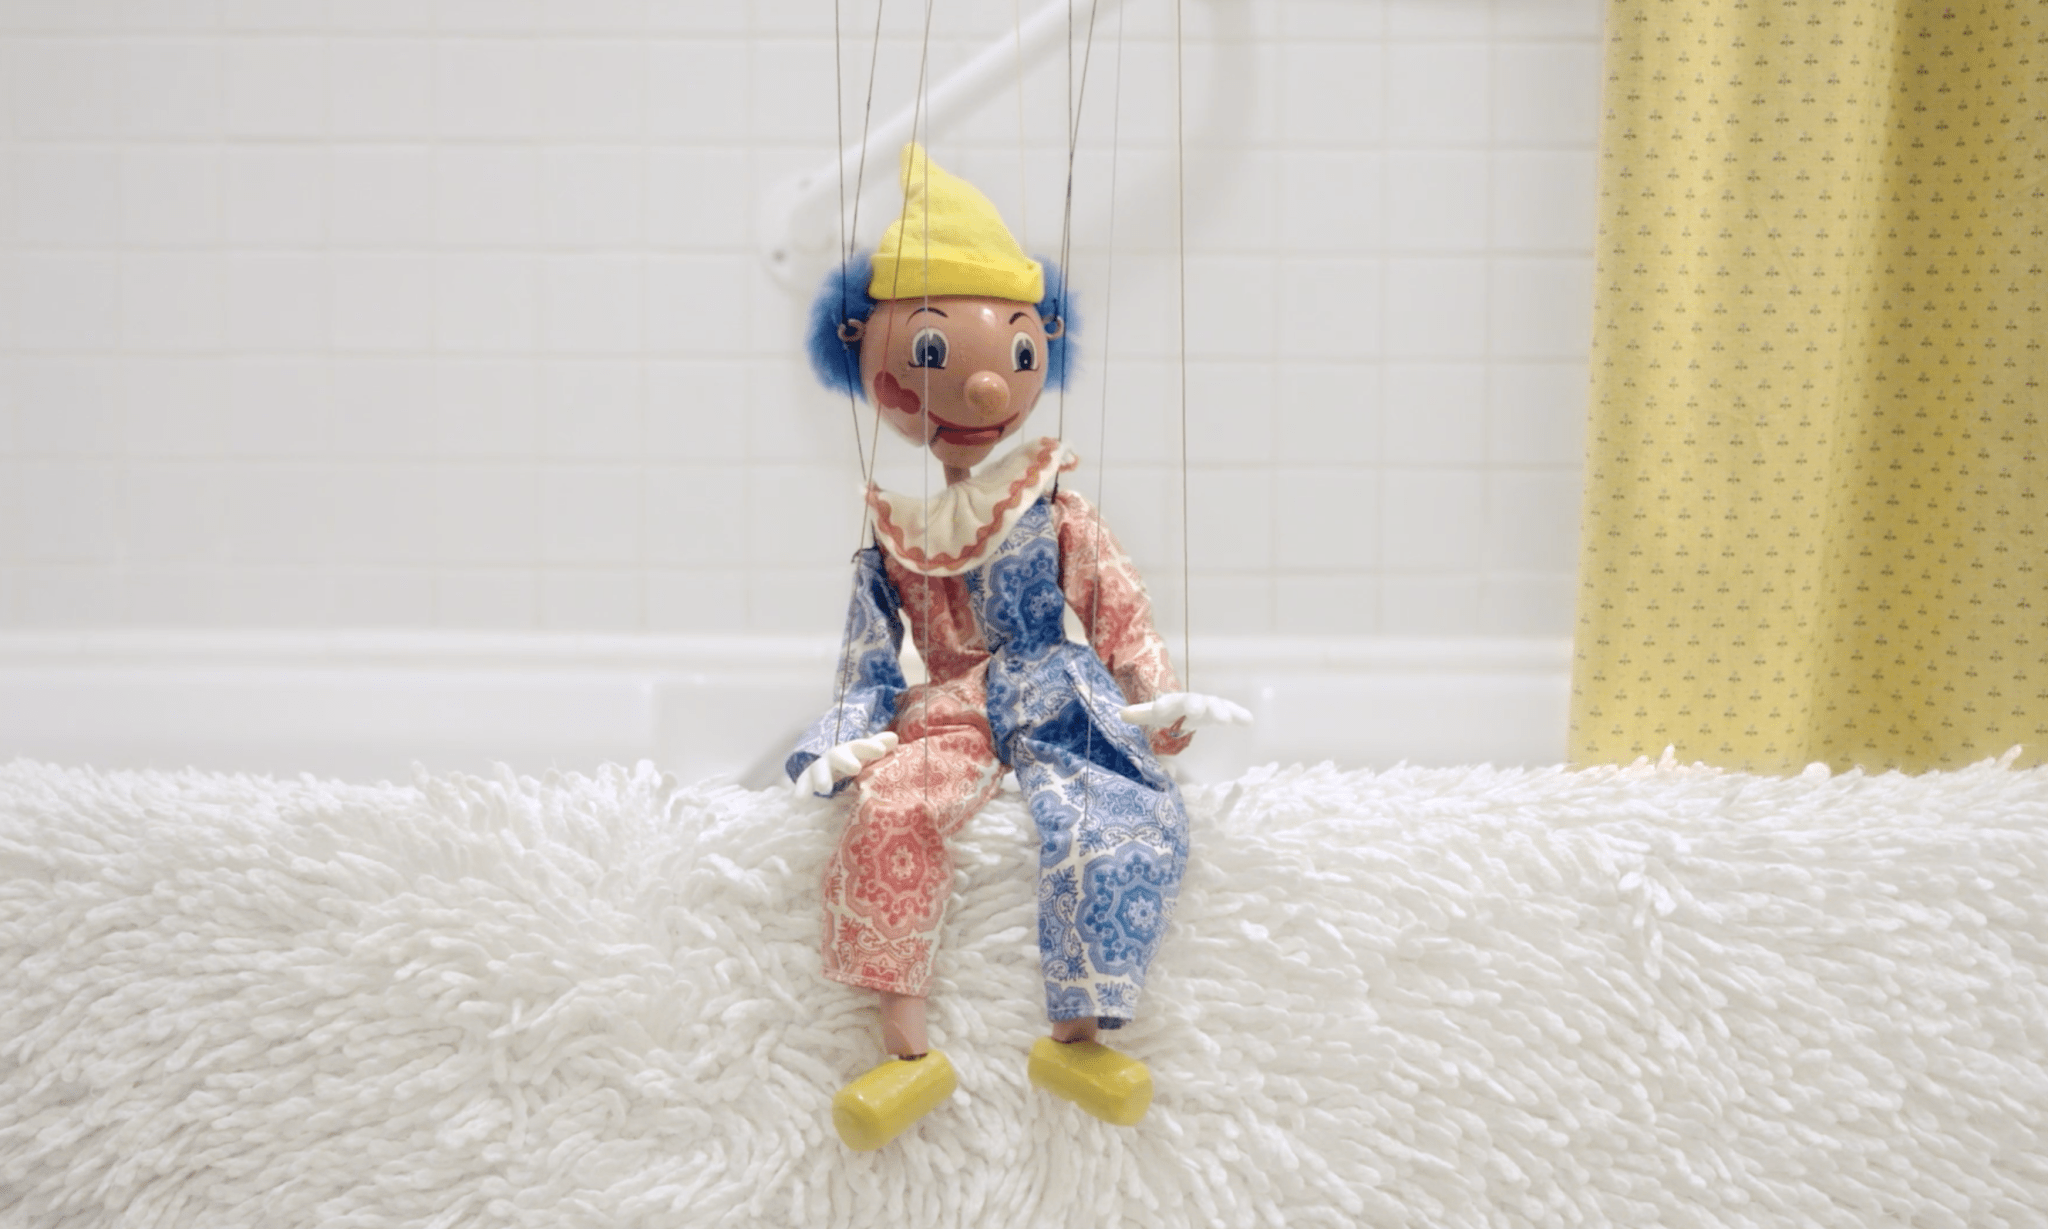 a puppet on edge of bathtub.